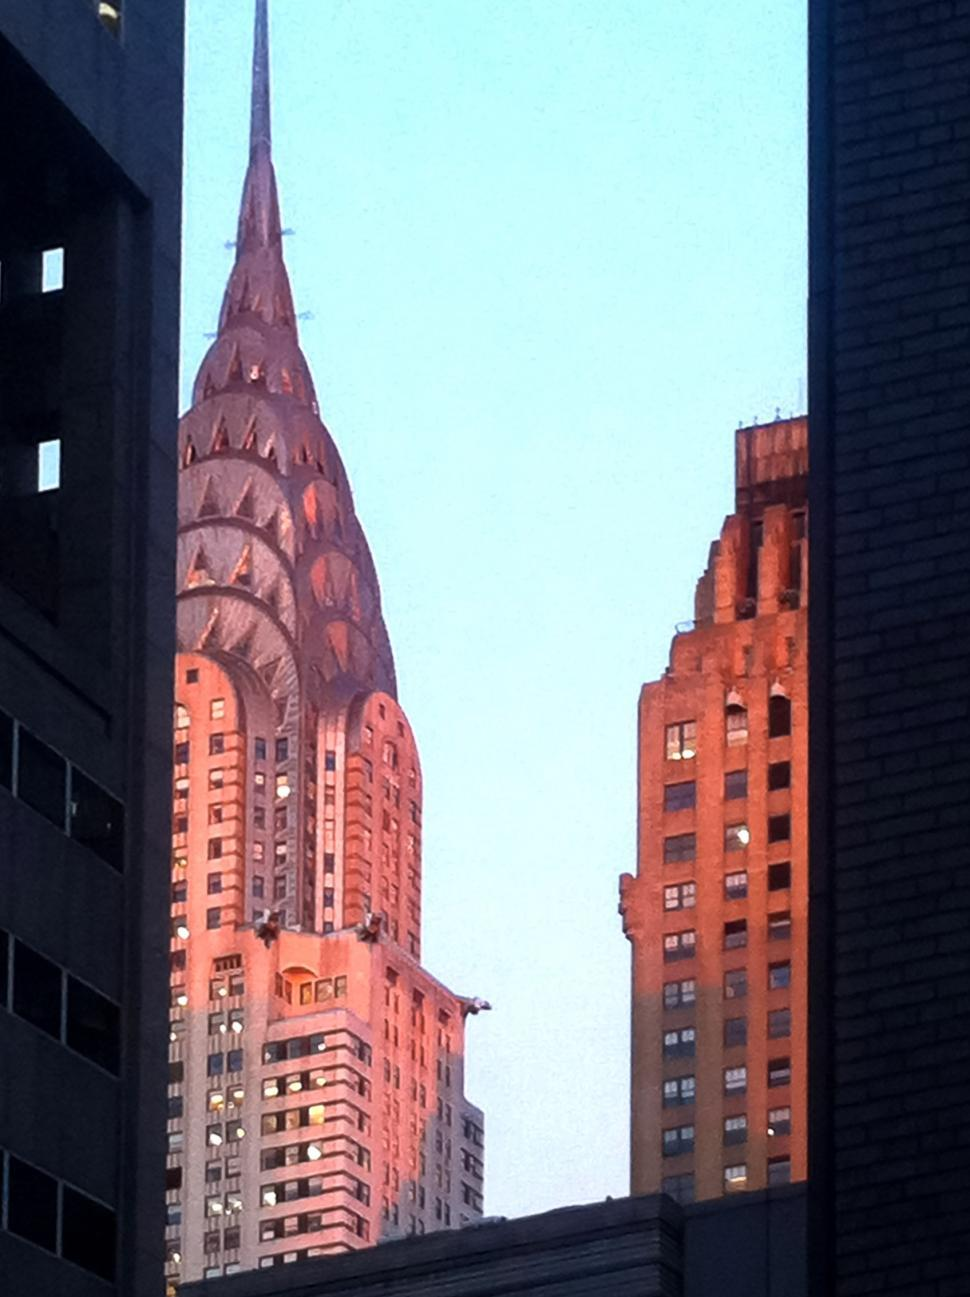 Download Free Stock Photo of Chrysler Building from shadows